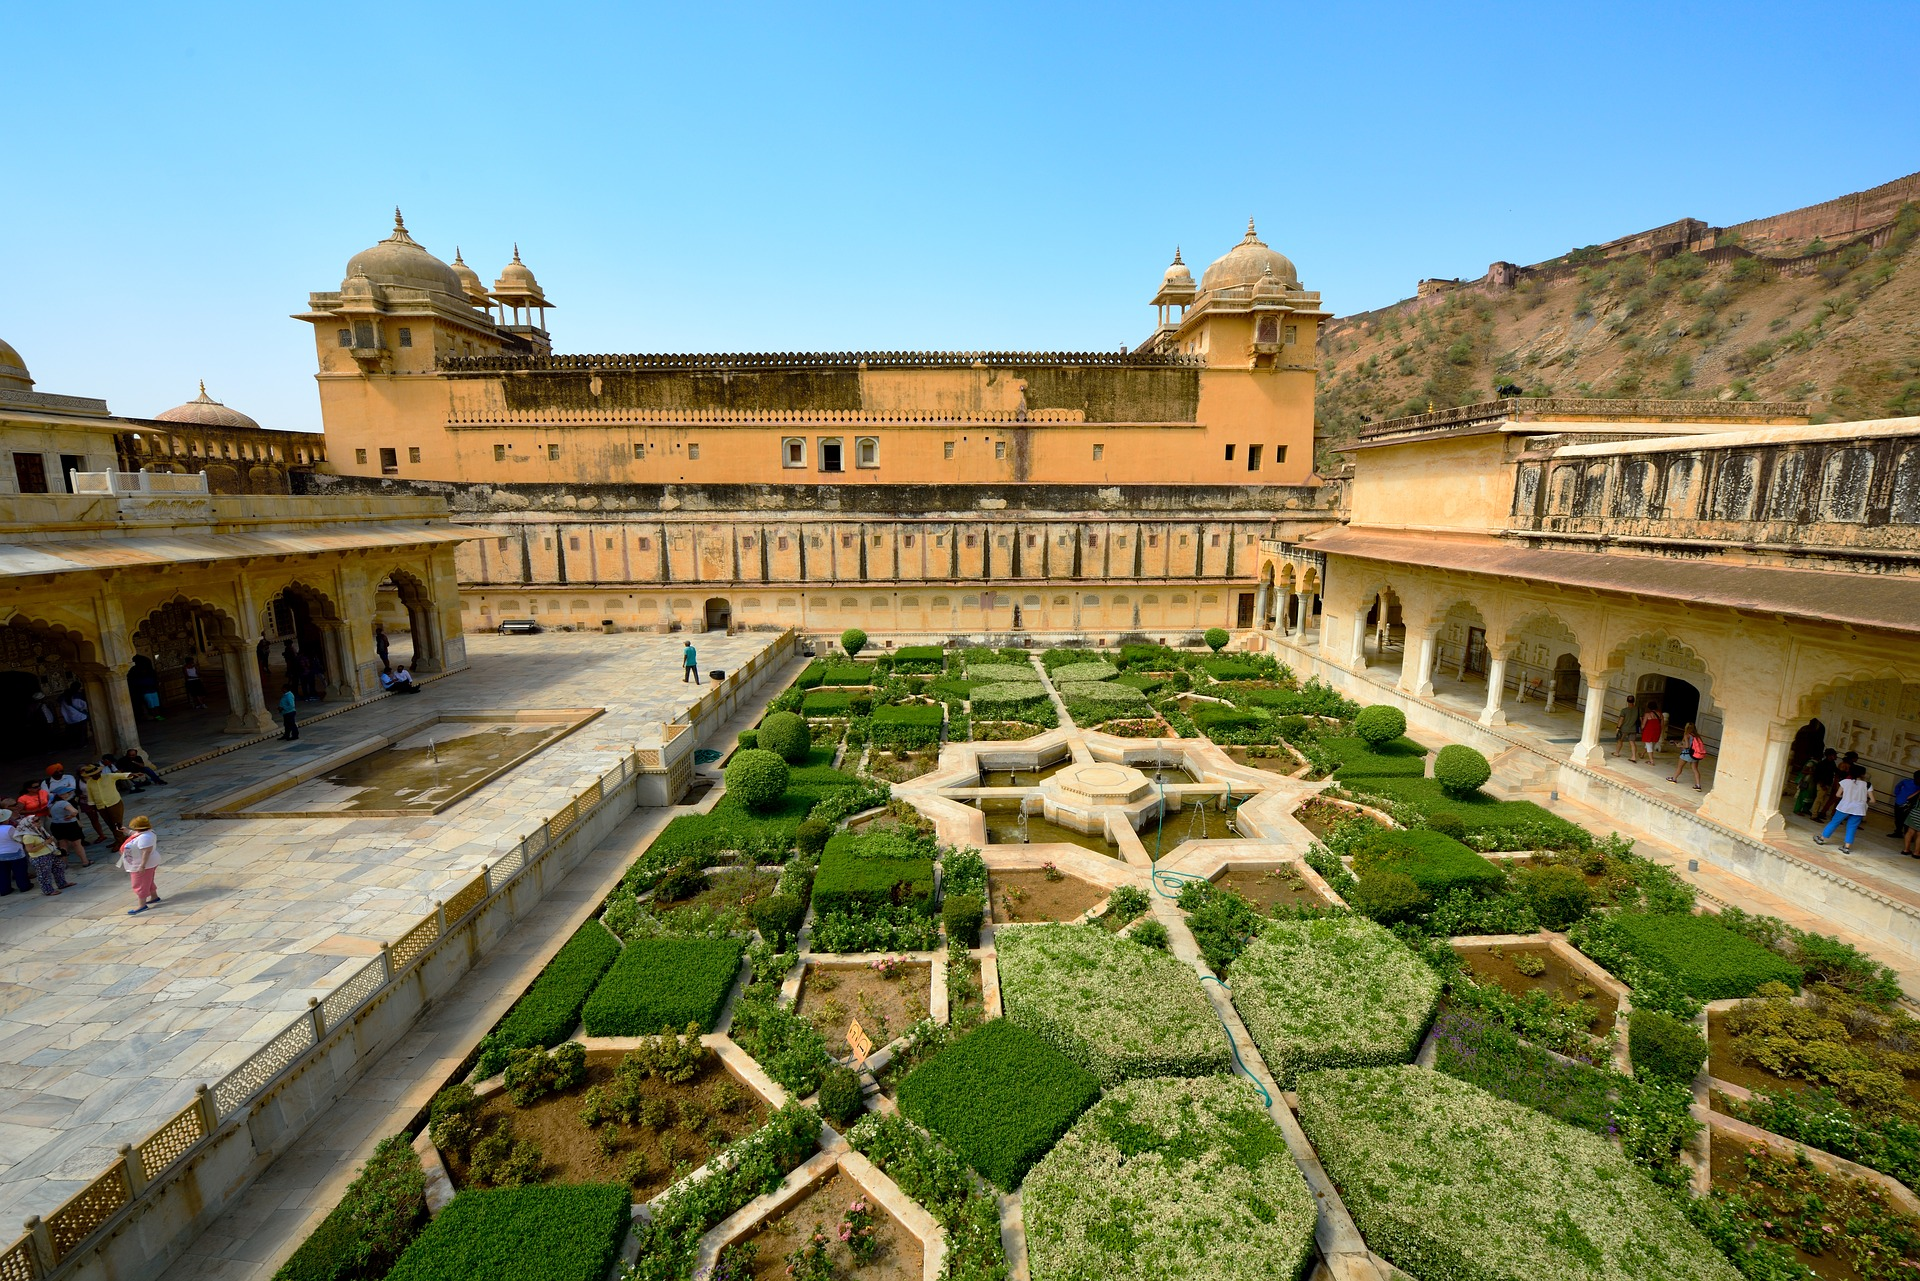 Amber Fort: The Wonder of India